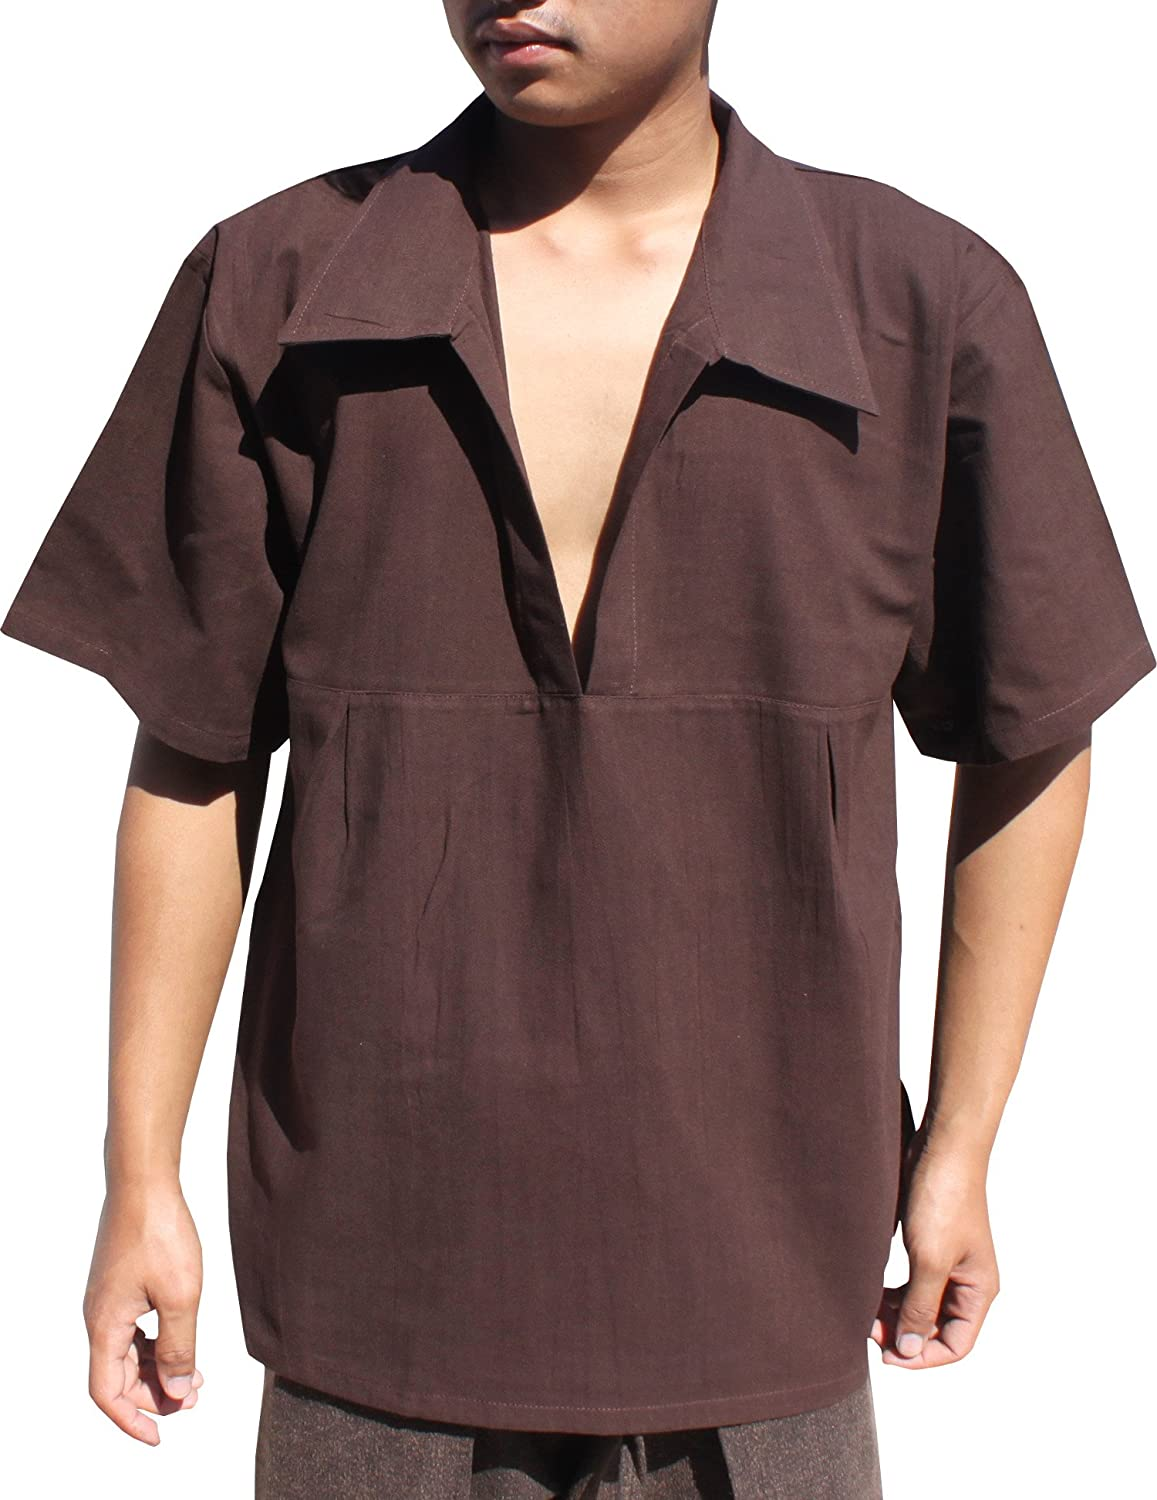 1960s Inspired Fashion: Recreate the Look RaanPahMuang Renaissance Summer Cotton Costume Shirt Wide Plunging Poets Collar $17.10 AT vintagedancer.com